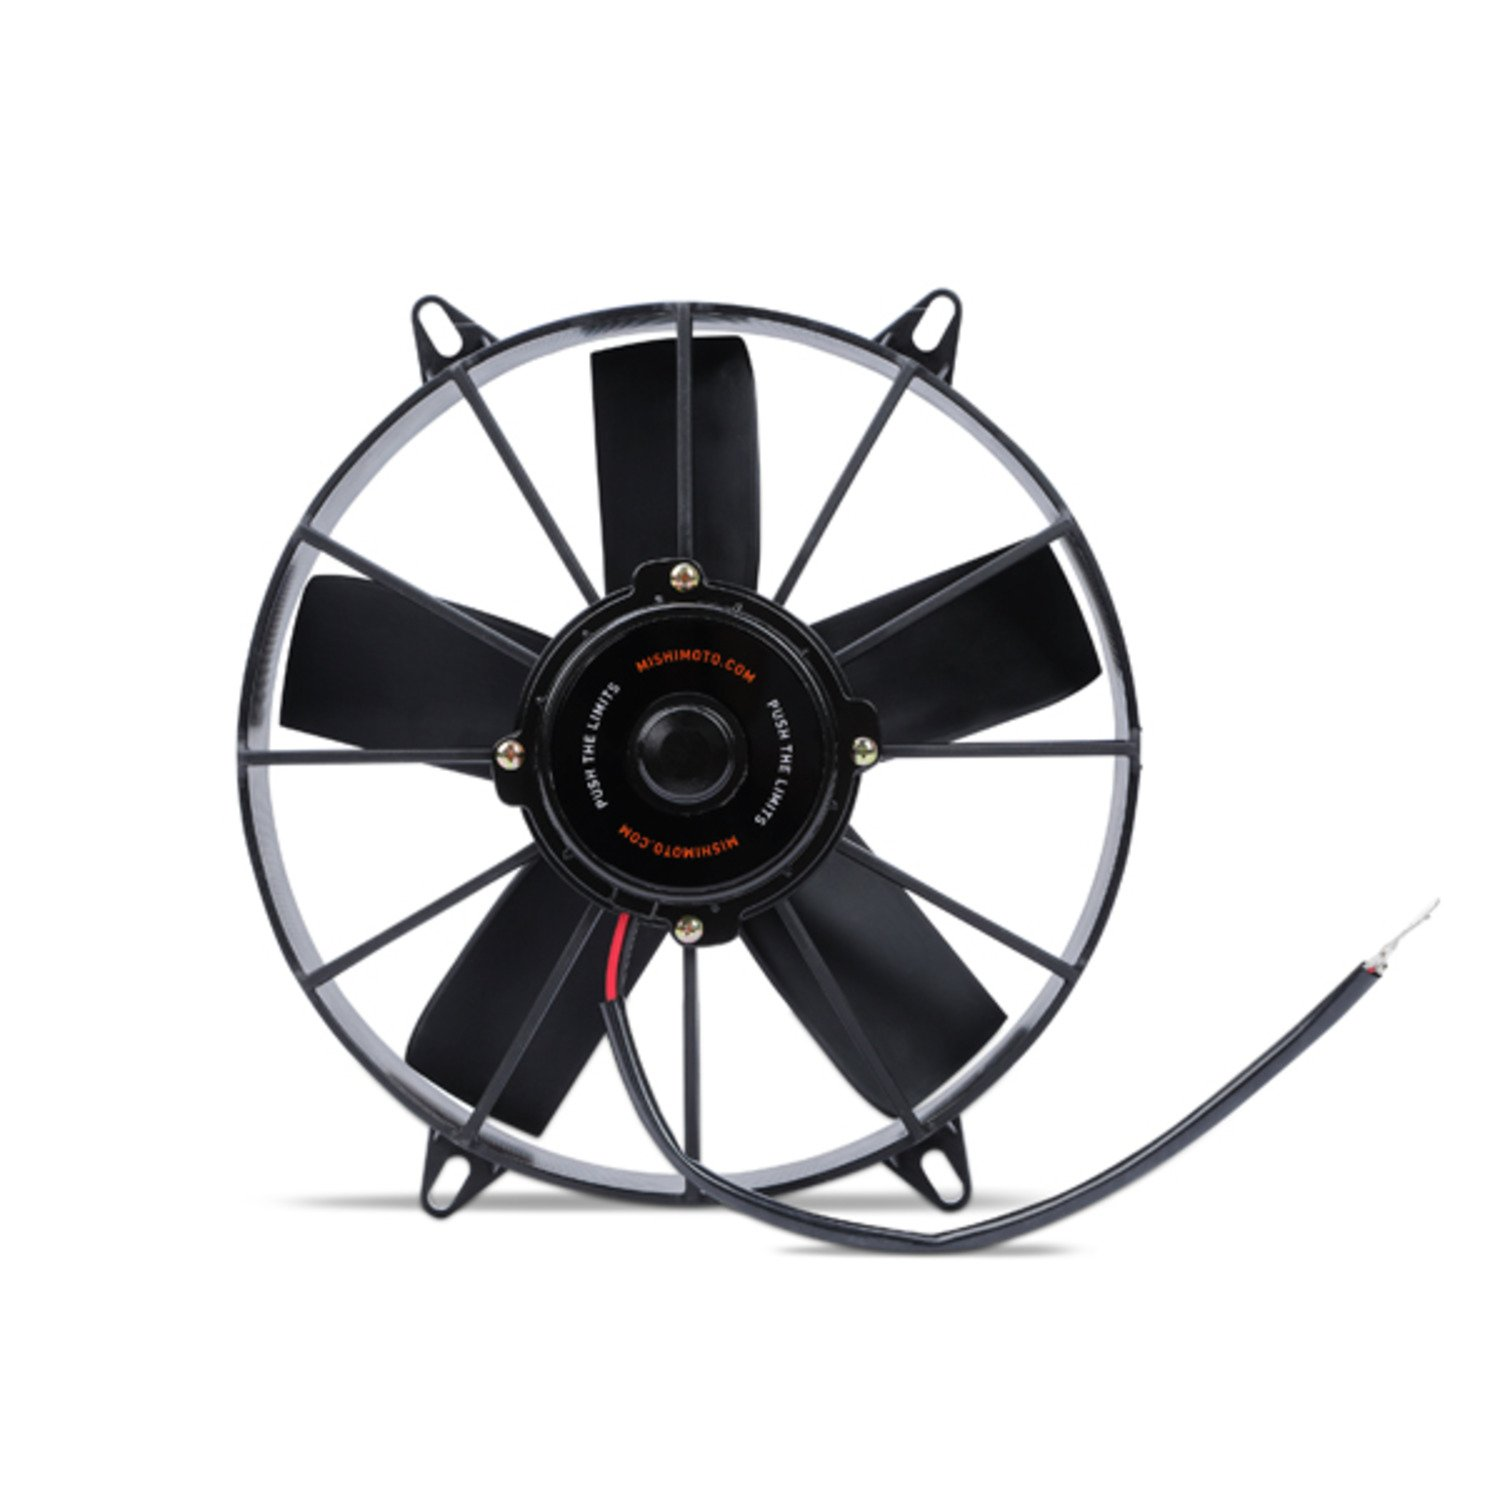 Mishimoto MMFAN-11HD Race Line, High-Flow Fan, 11', Black 11